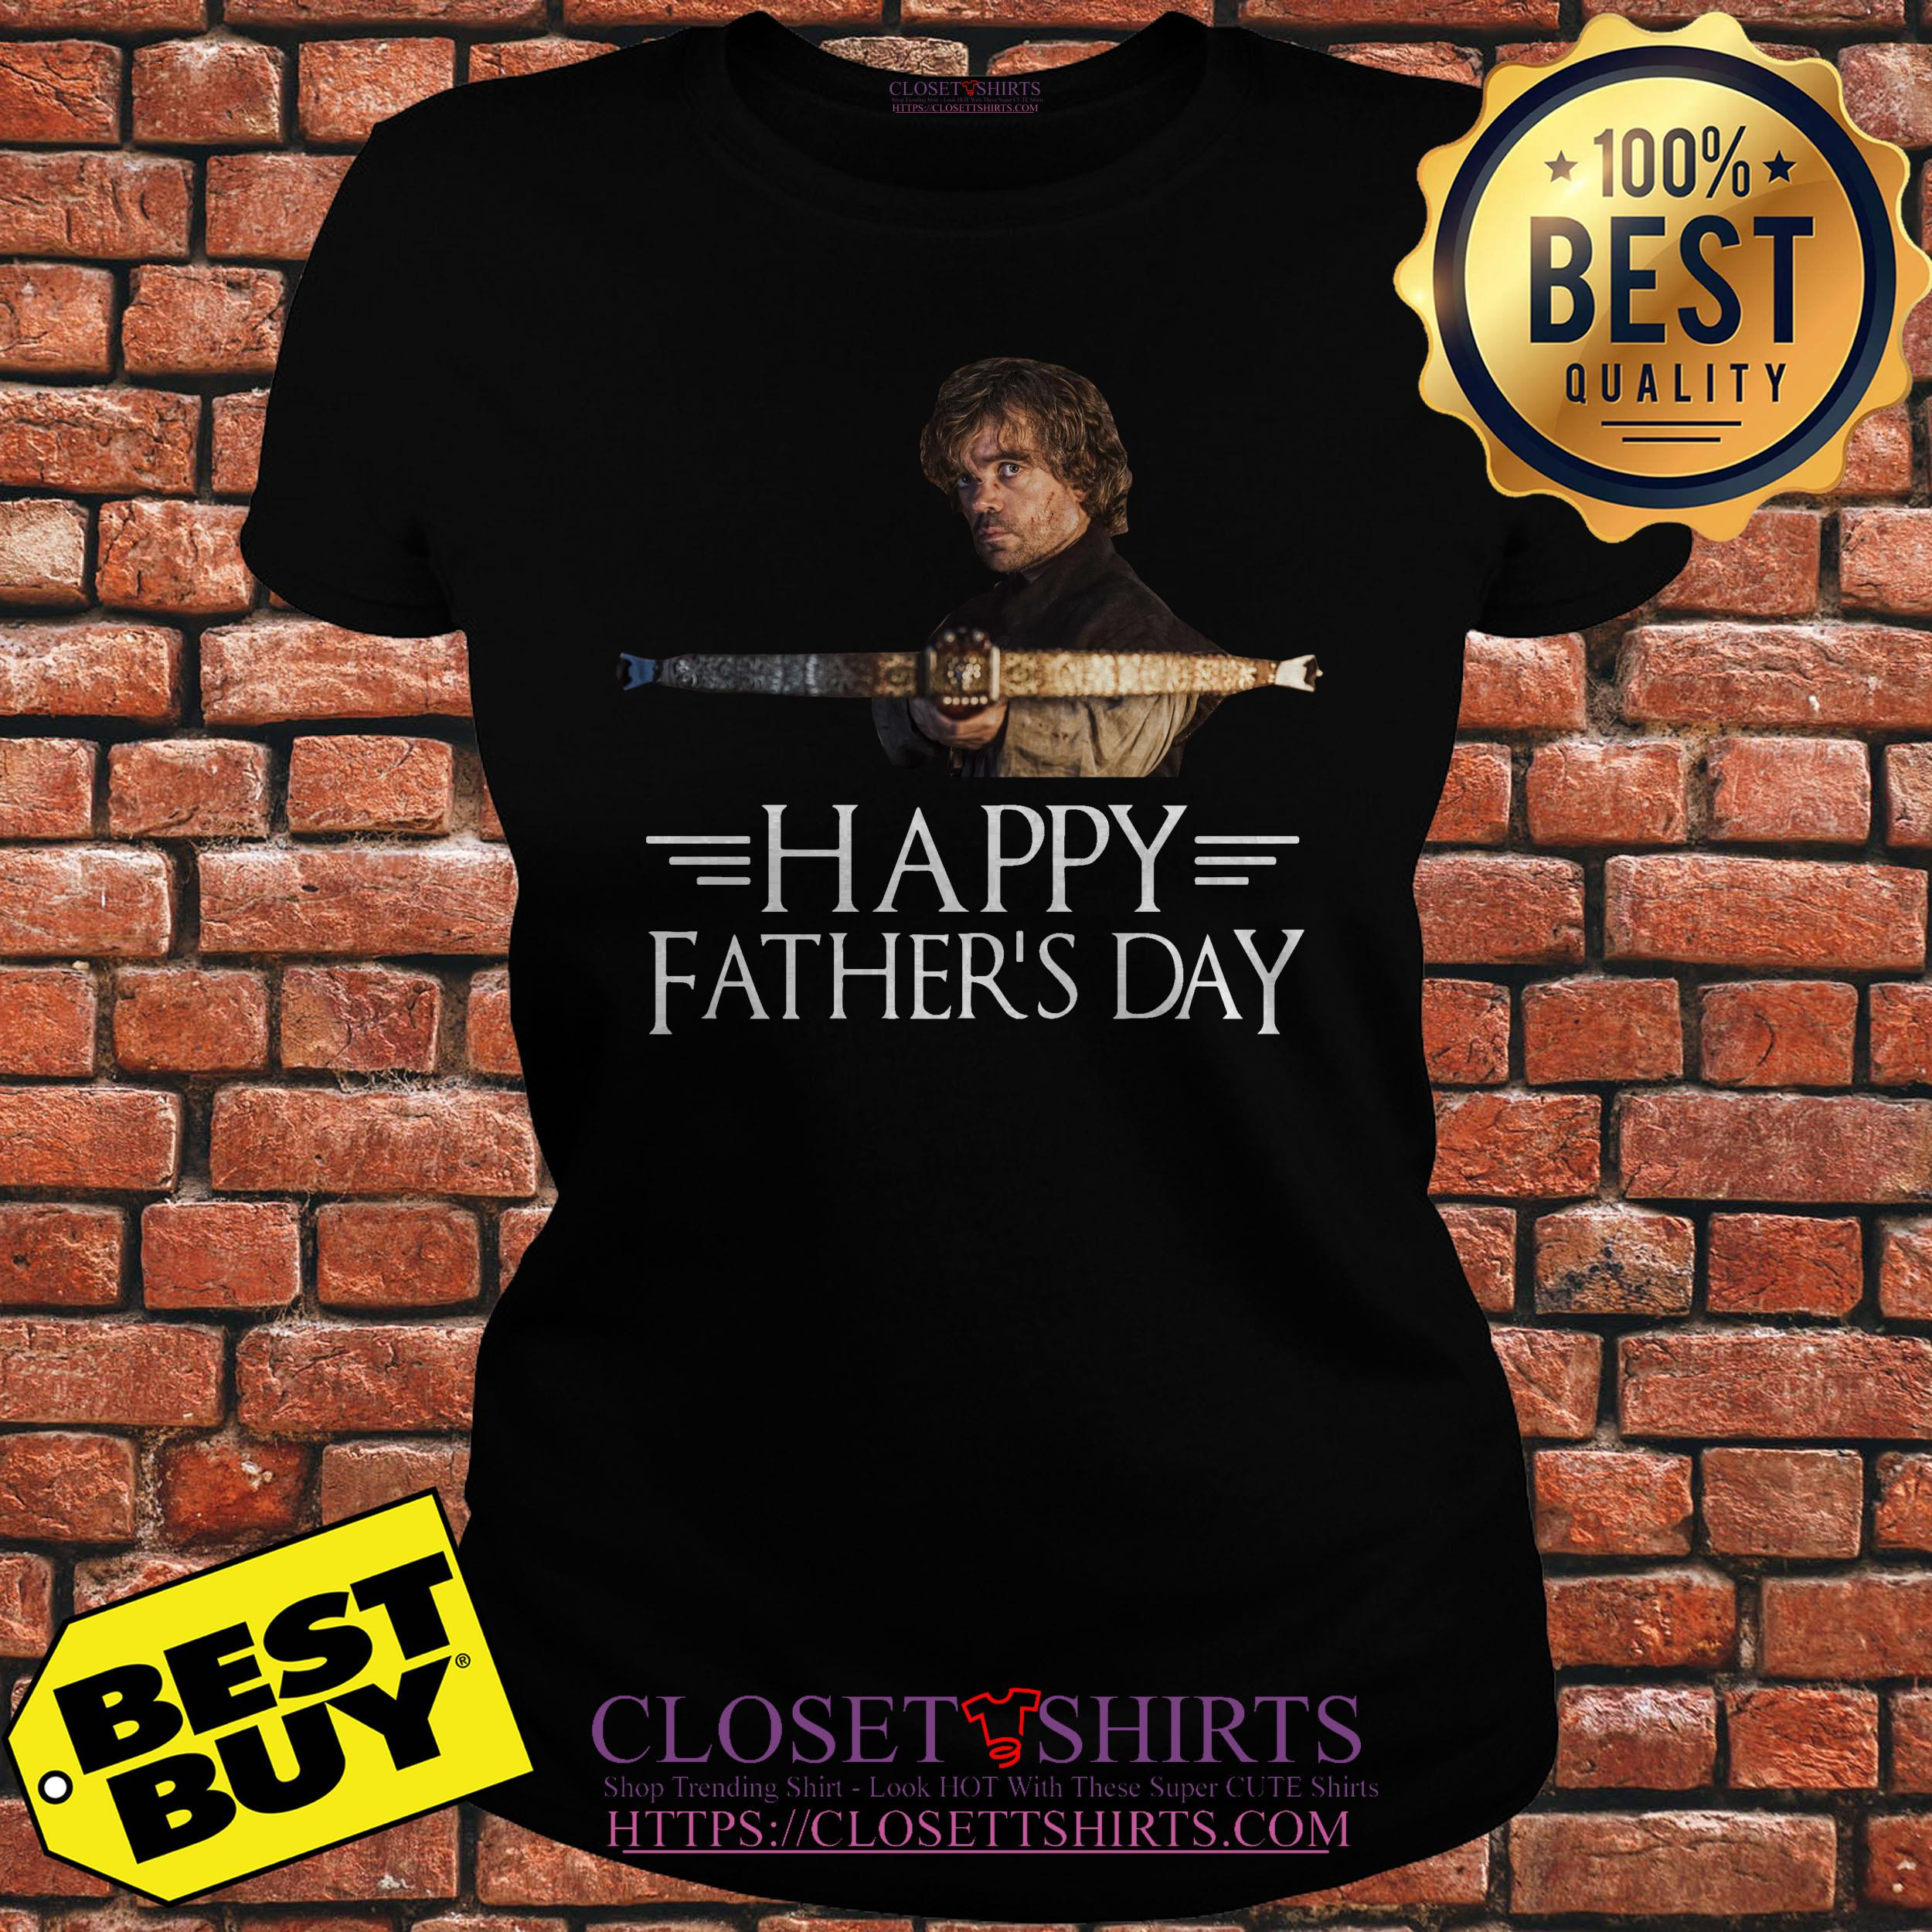 35668d3a Tyrion Lannister happy Father's day shirt - hothithu461@gmail.com